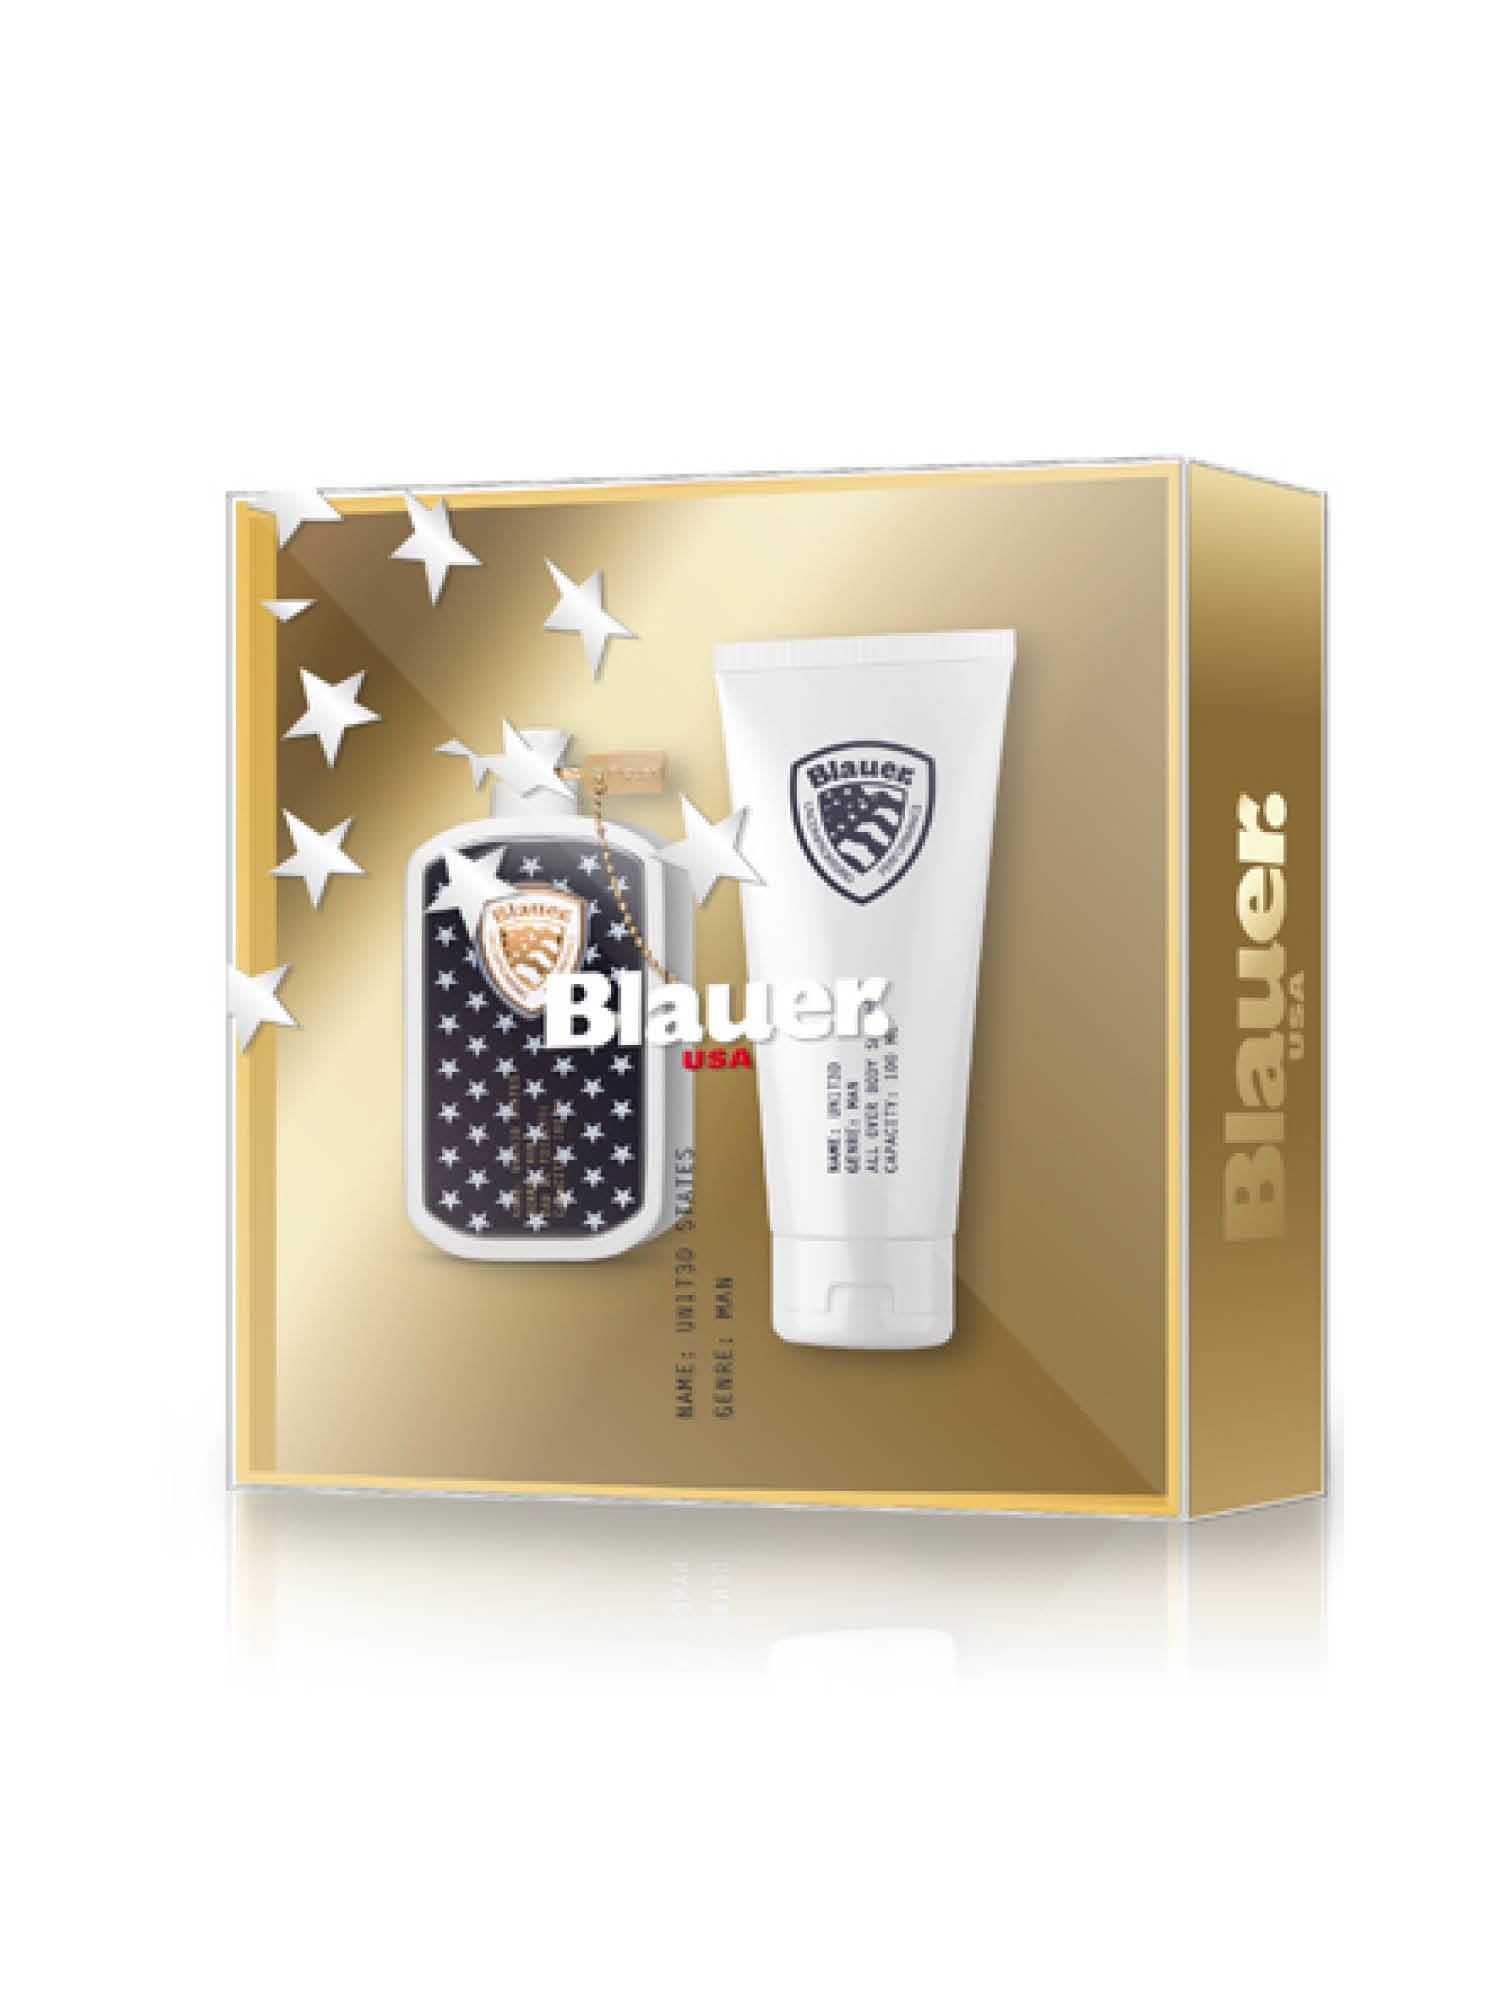 BLAUER STATES COFFRET FOR MAN - Blauer